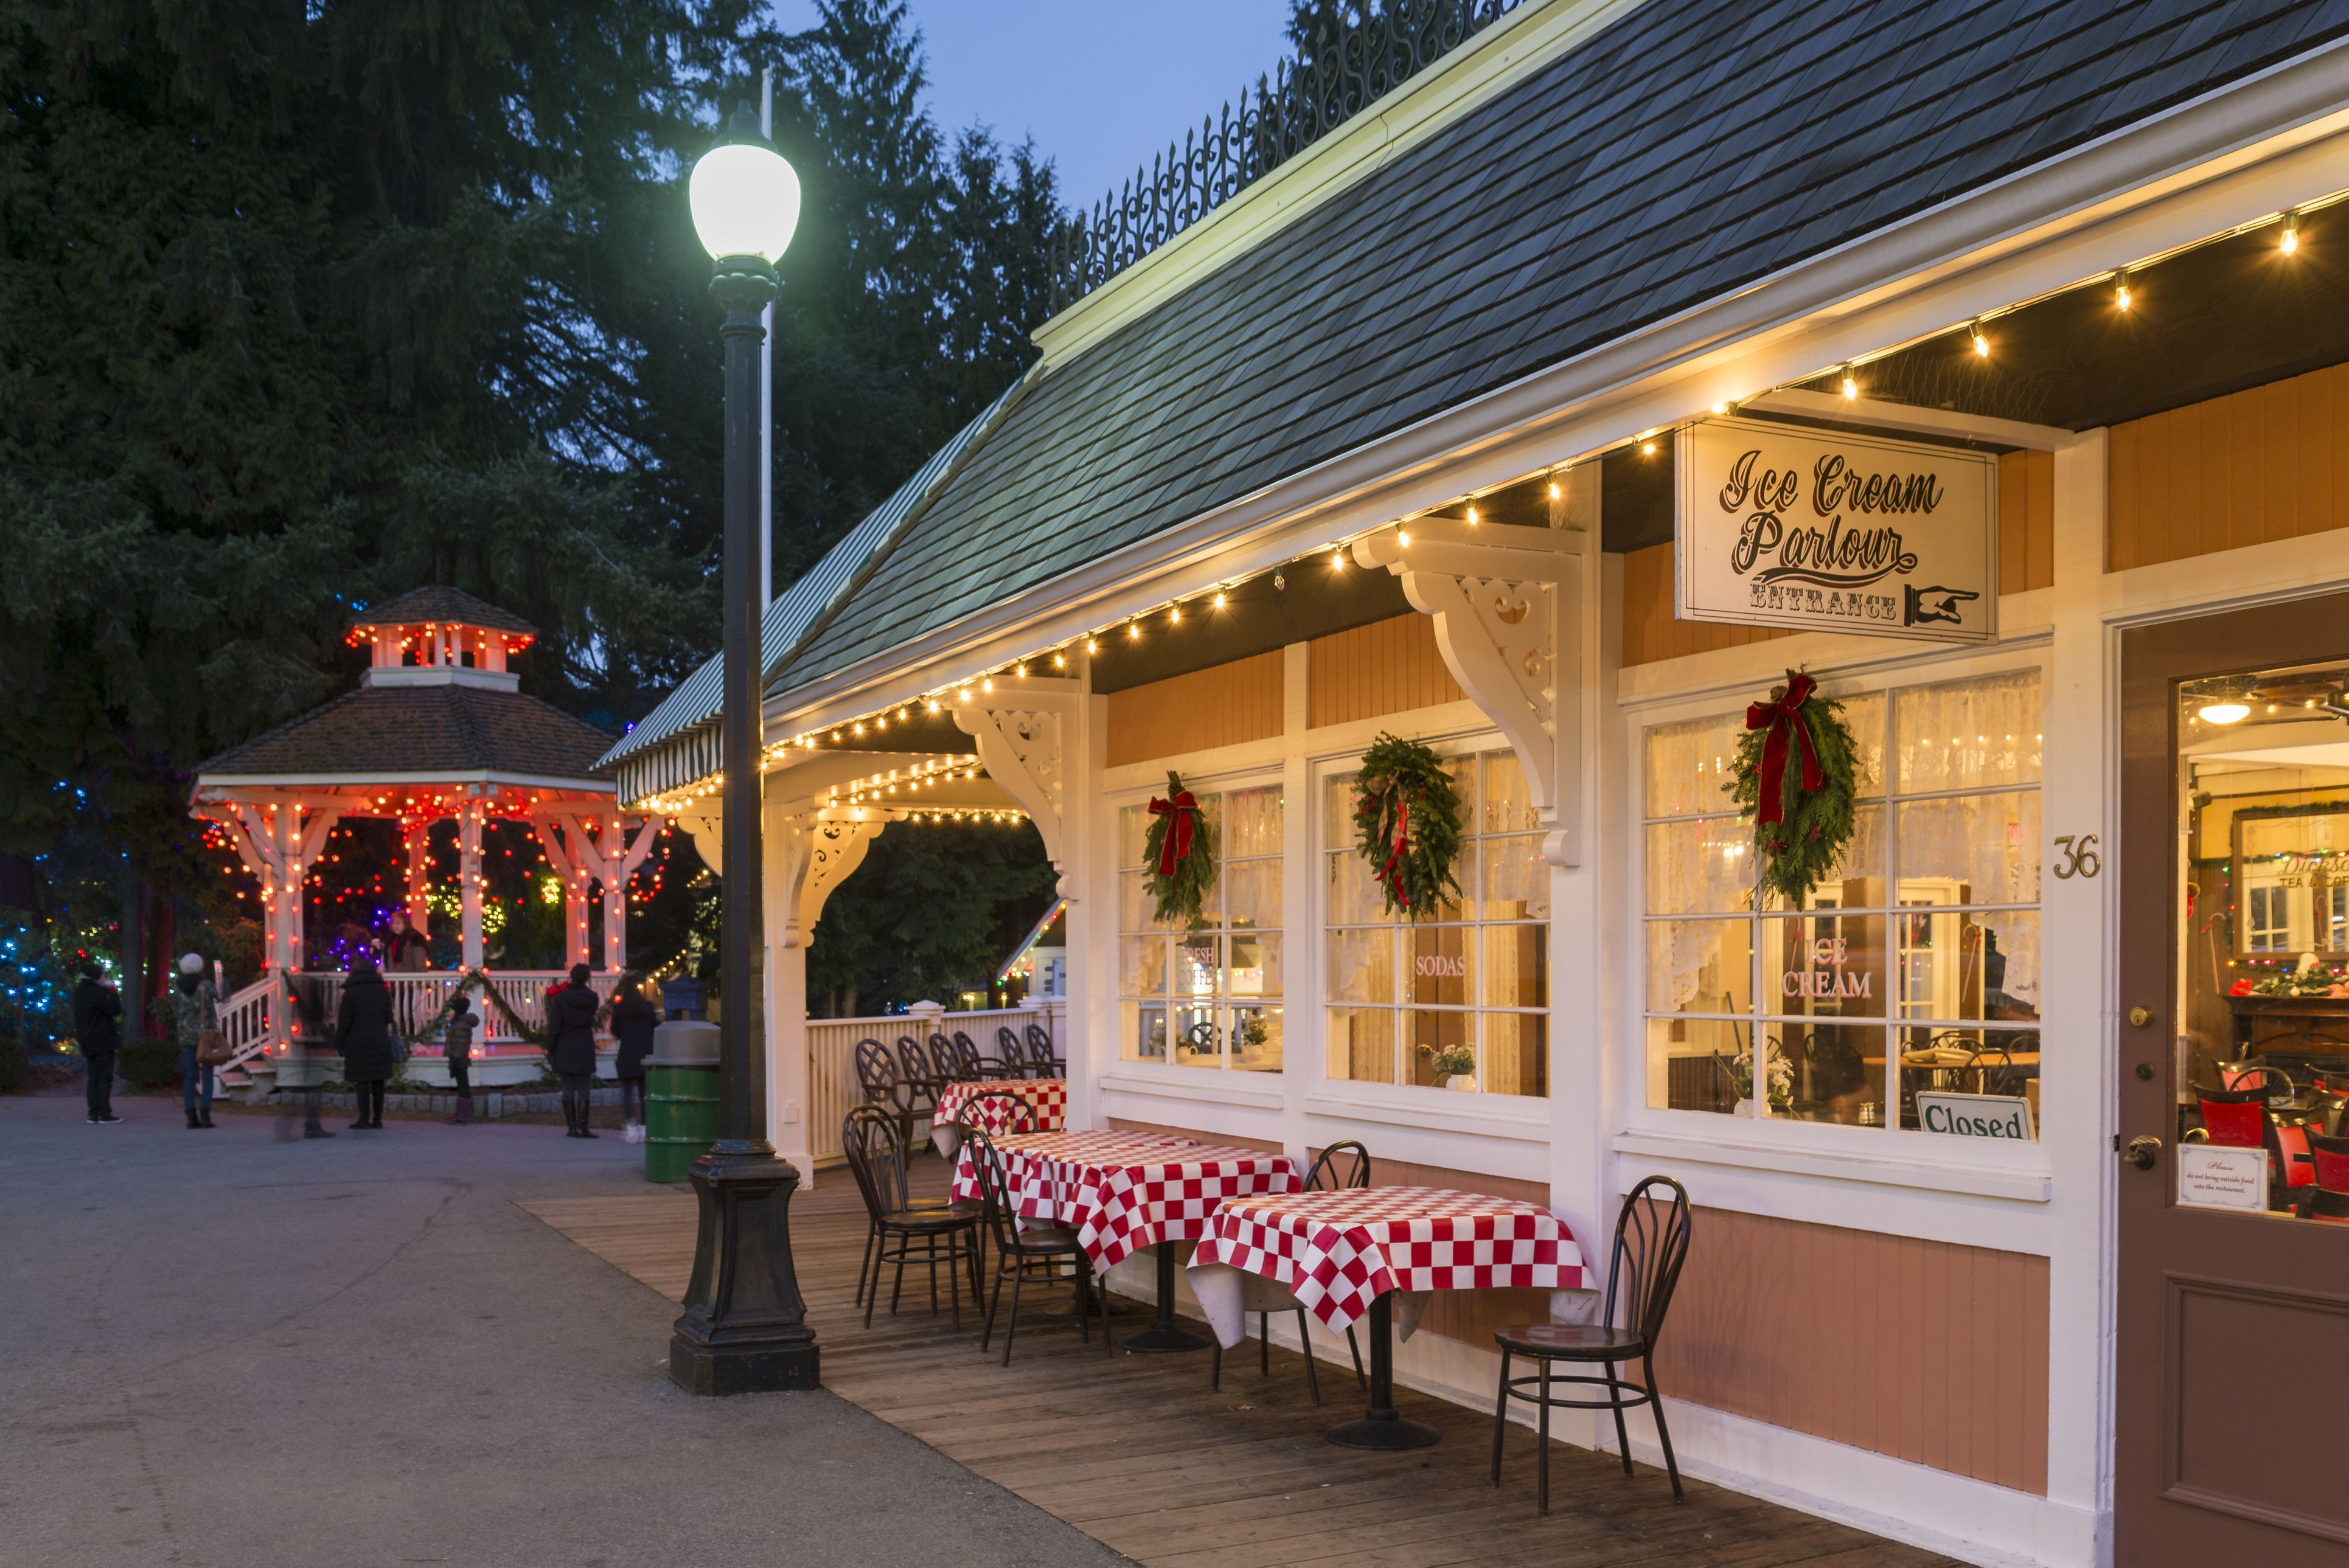 Hallmark's 'Christmas in Evergreen' Movie Was Filmed in a Village You Can Visit